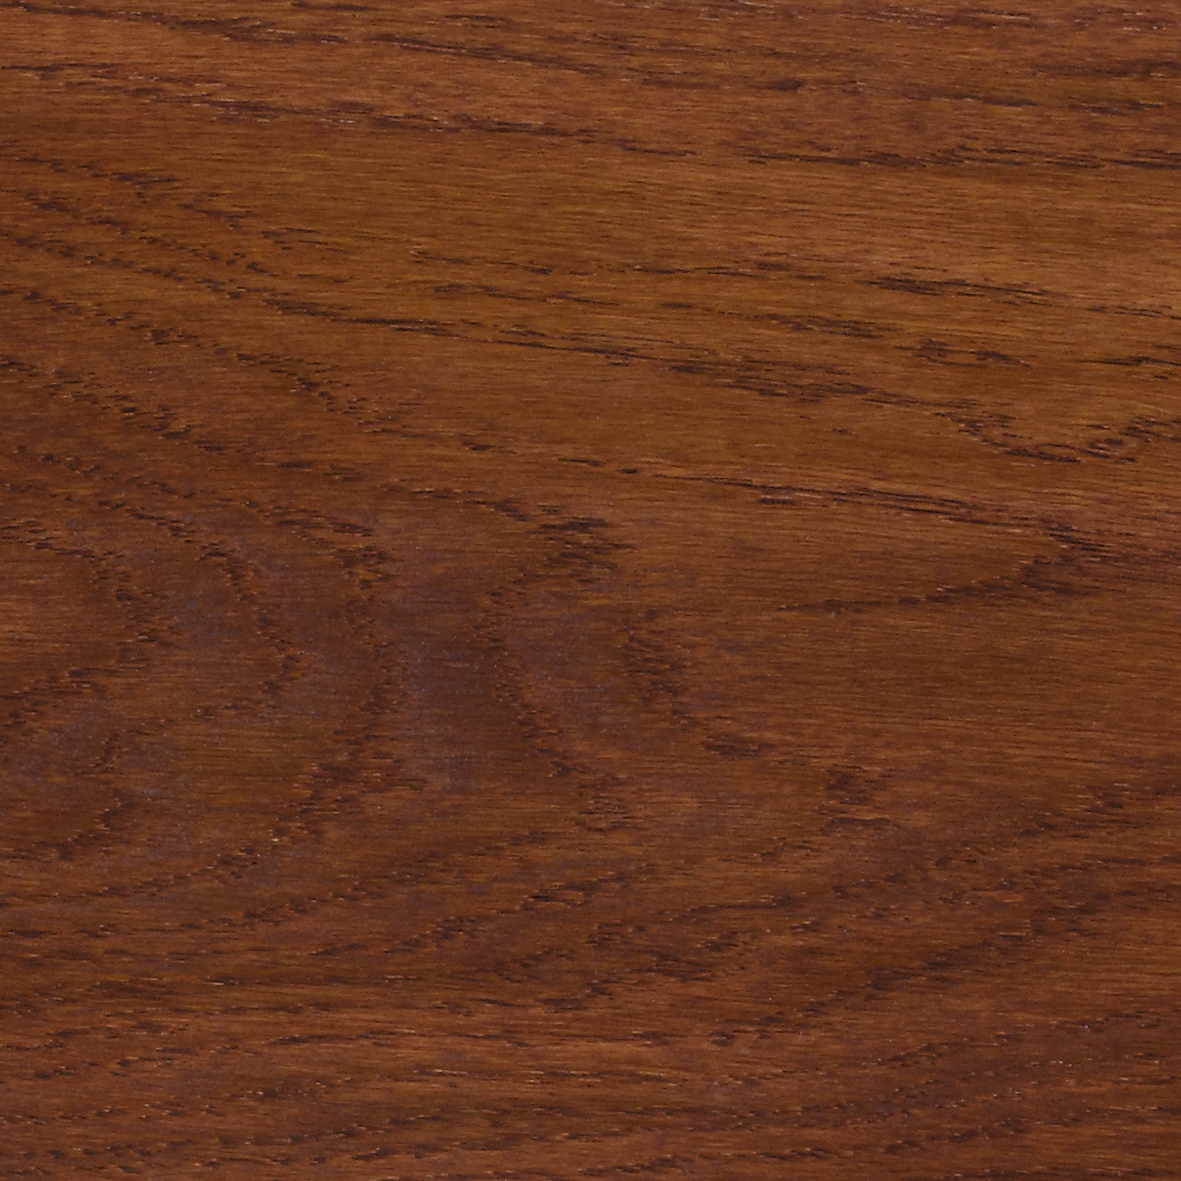 Cherry Coral wood floor finish